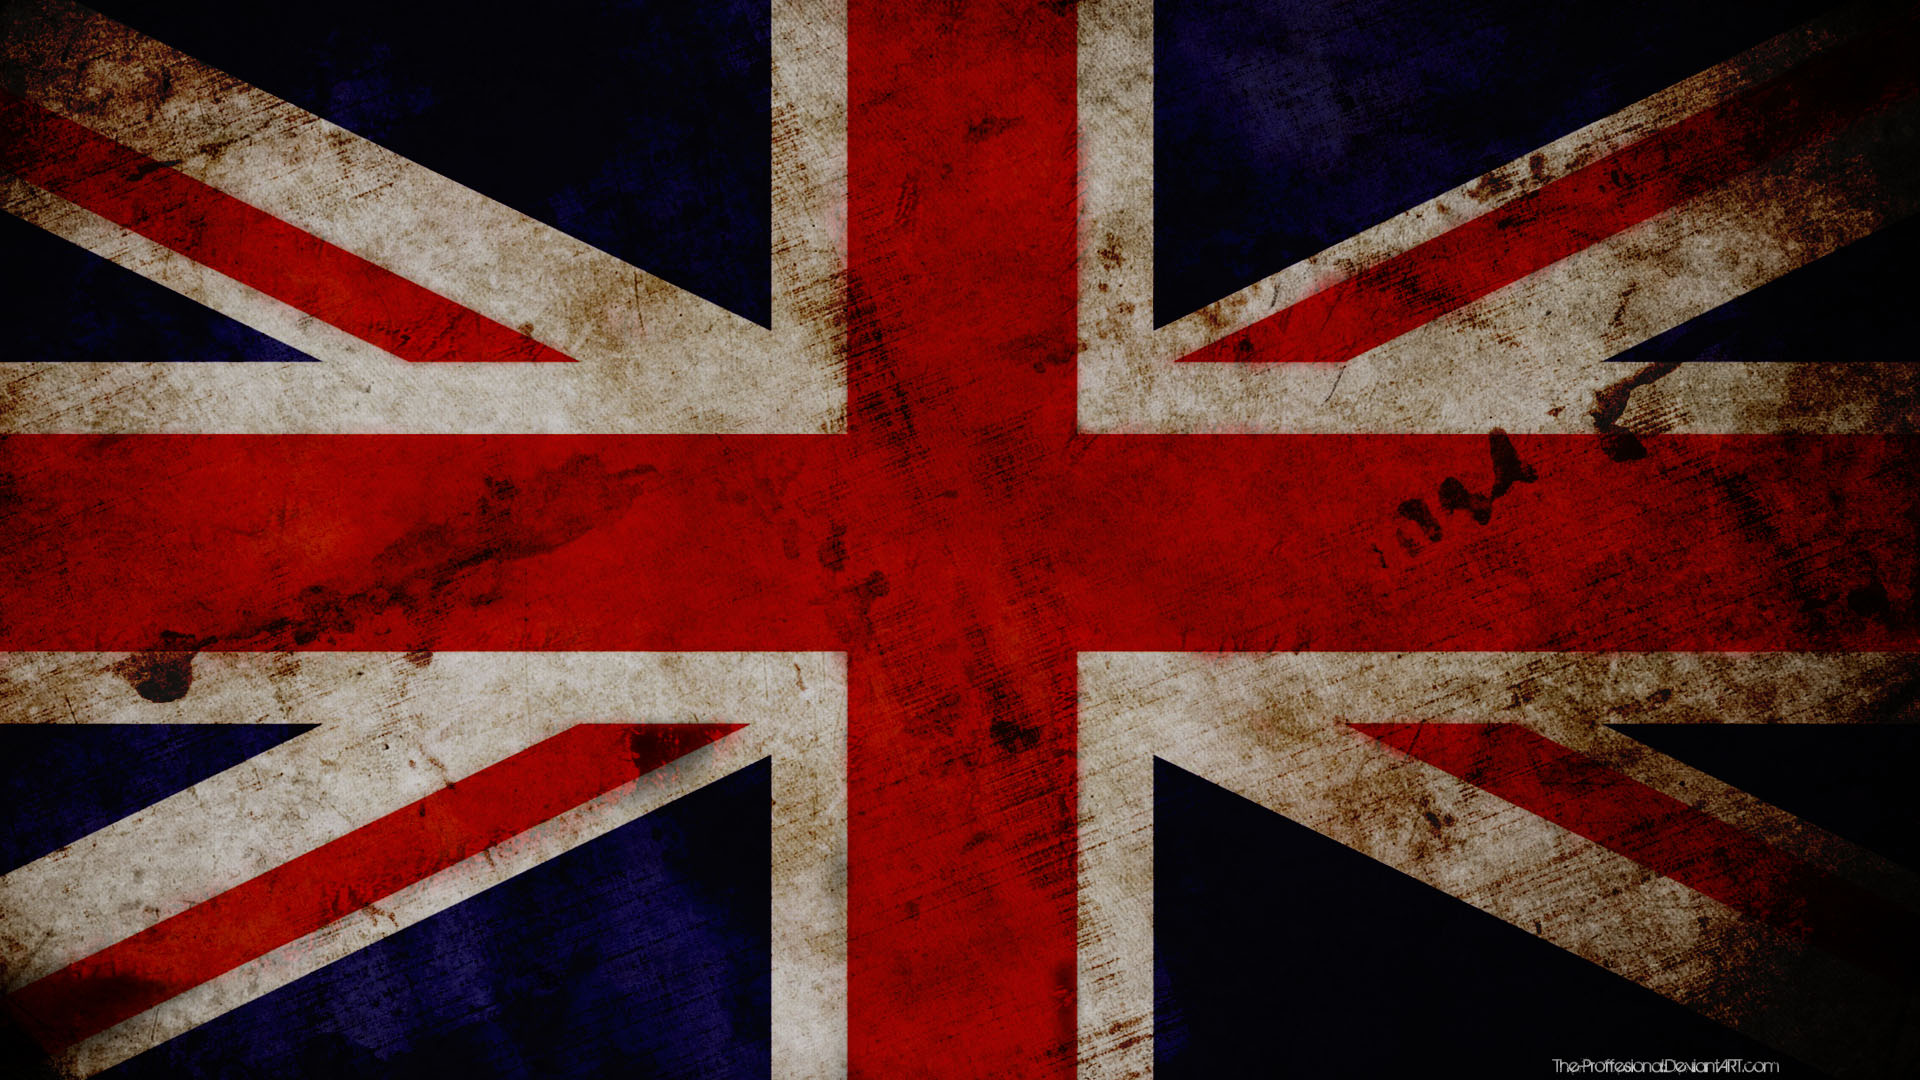 Great Britain grunge wallpaper by The-proffesional on DeviantArt